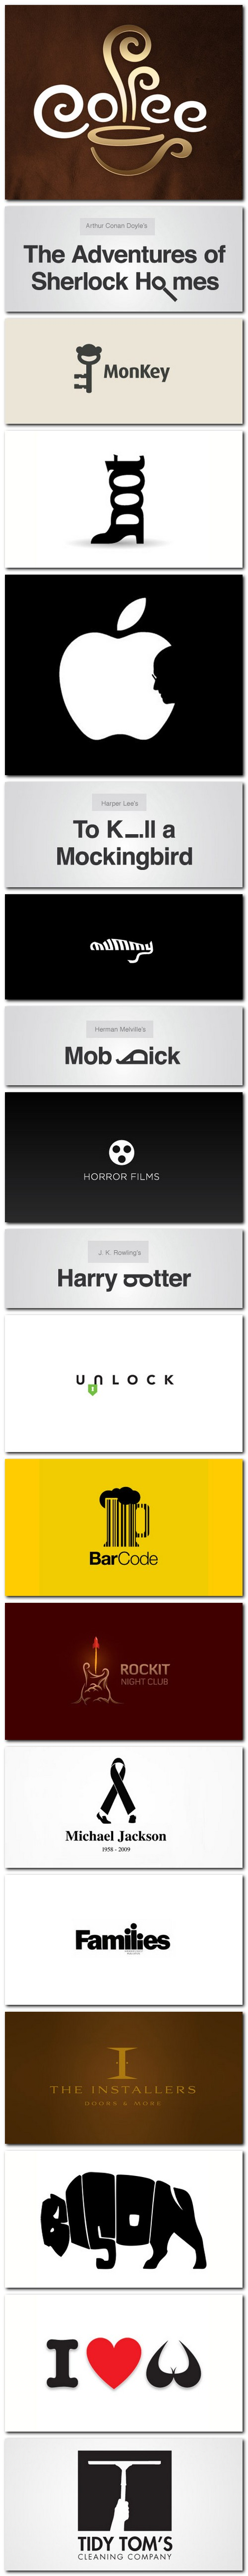 Creative and Clever Logos